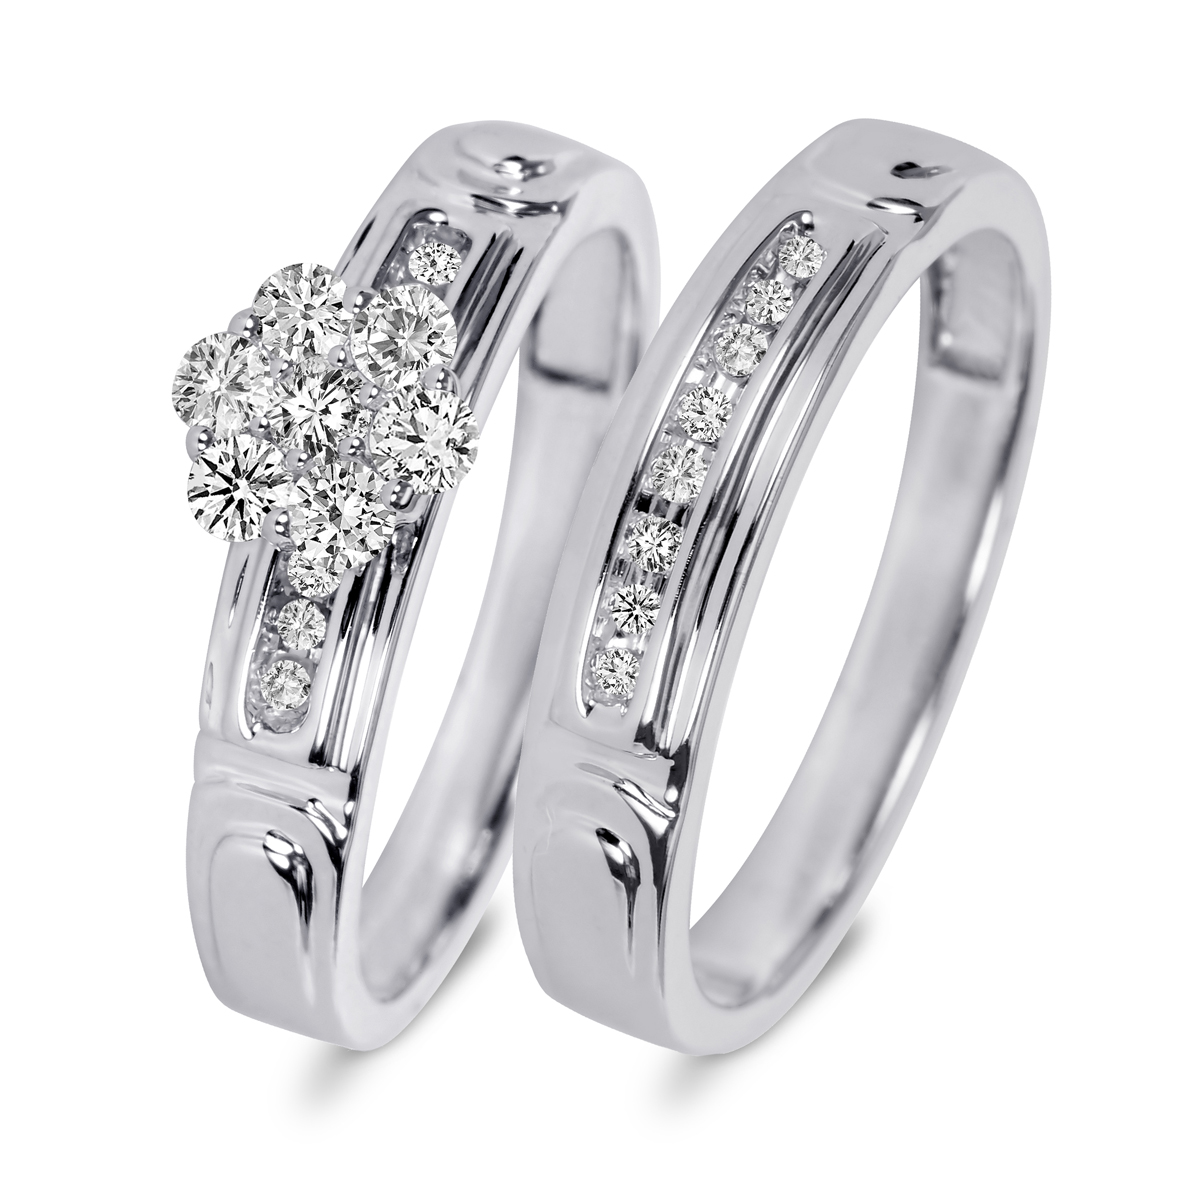 tw diamond womens bridal wedding ring set 10k white gold my trio rings br504w10k - White Gold Wedding Rings Sets